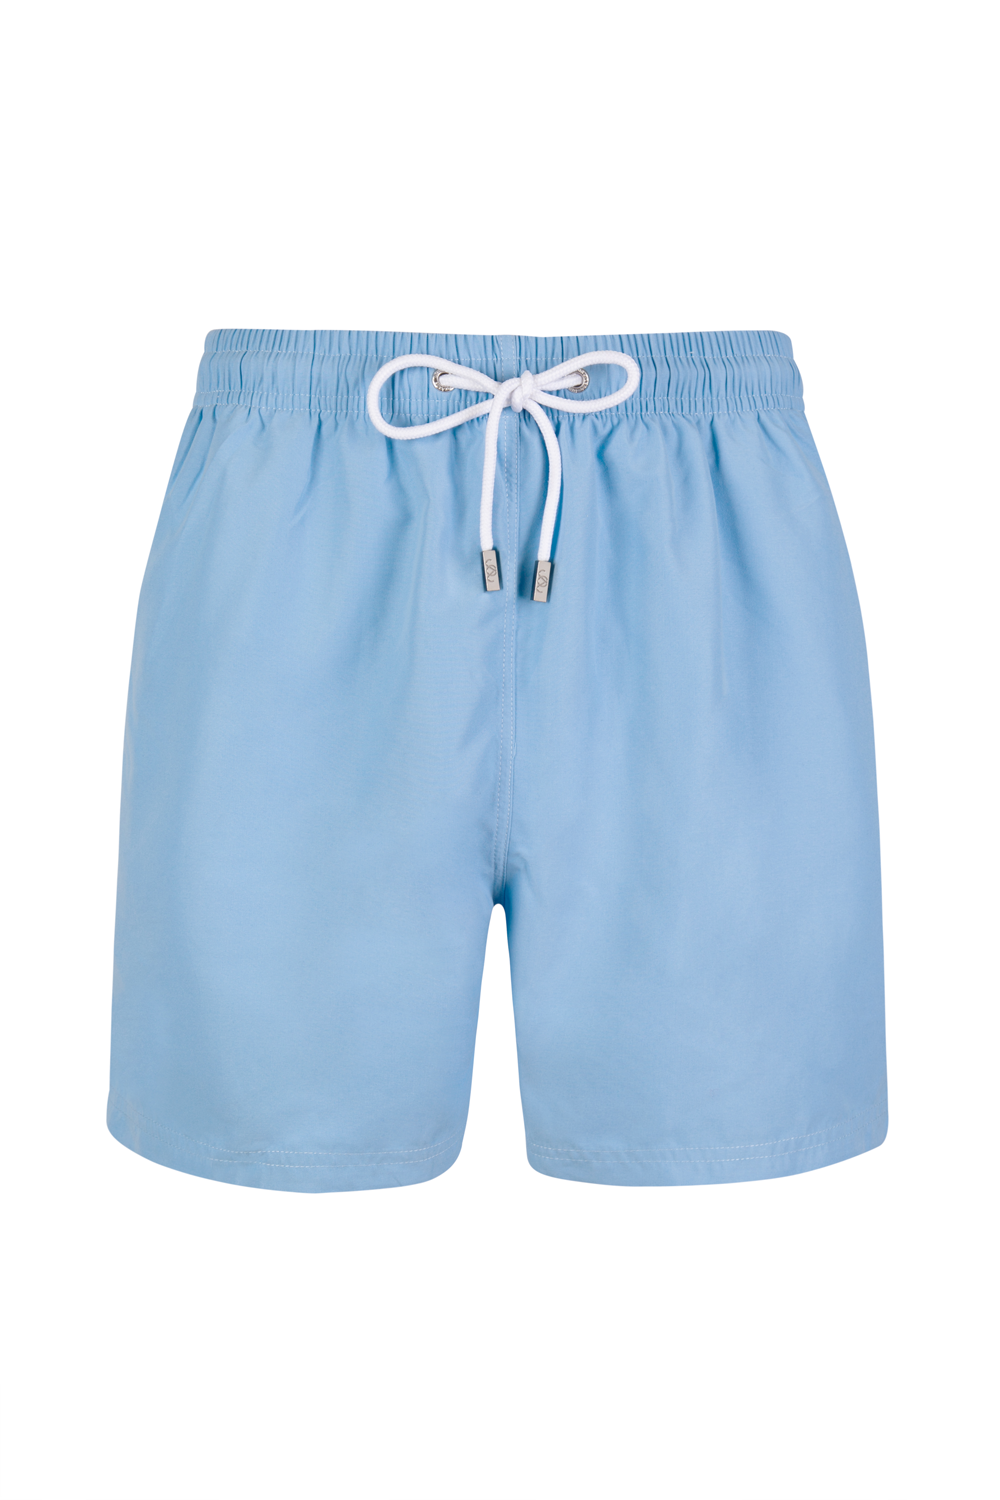 The Block Sky Blue Swim Short